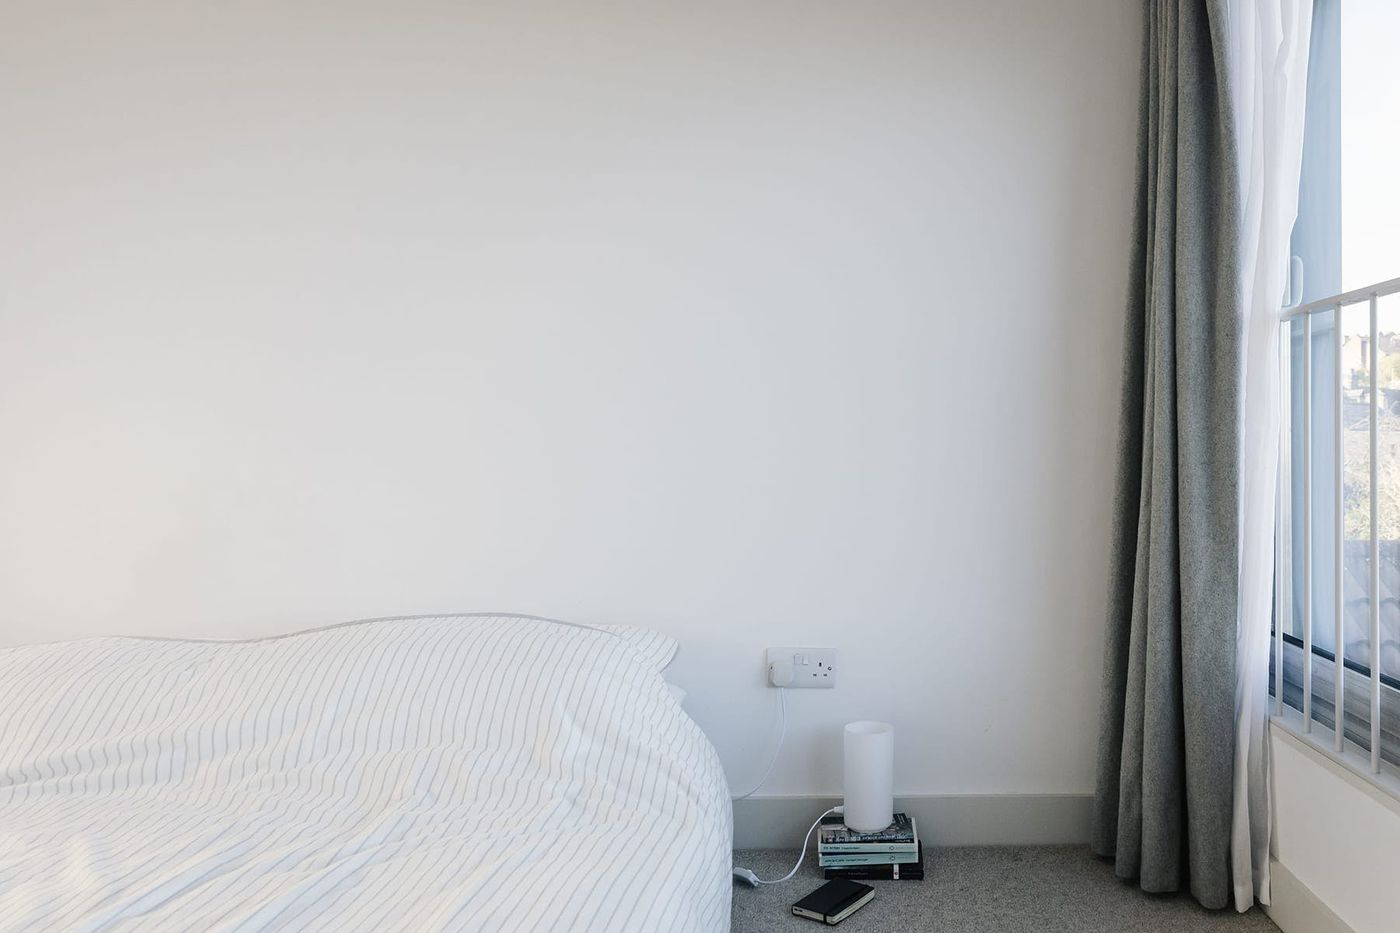 Interior view of white and grey light filled bedroom with juliet balcony and grey felt curtains within From Works loft conversion and rear dormer extension in Walkley, Sheffield.